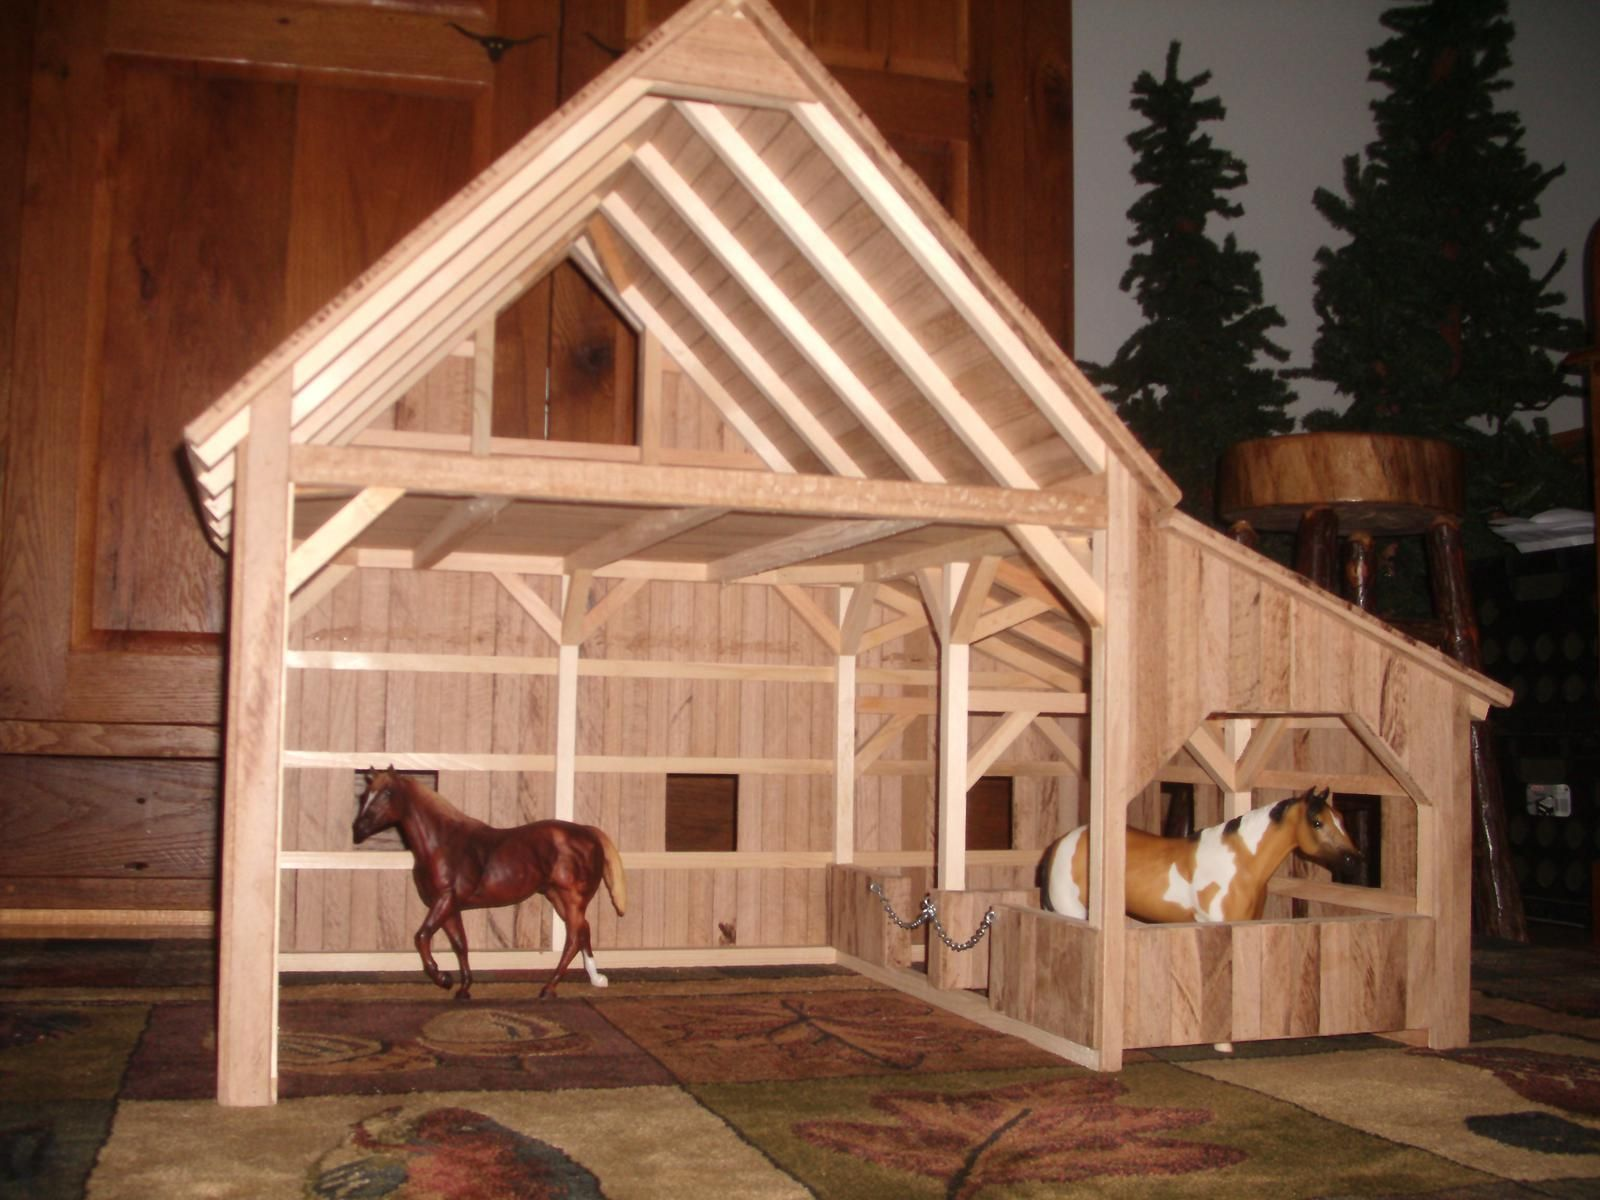 Wooden Toy Barn #4 | Wooden toy barn, Toy barn, Making ...